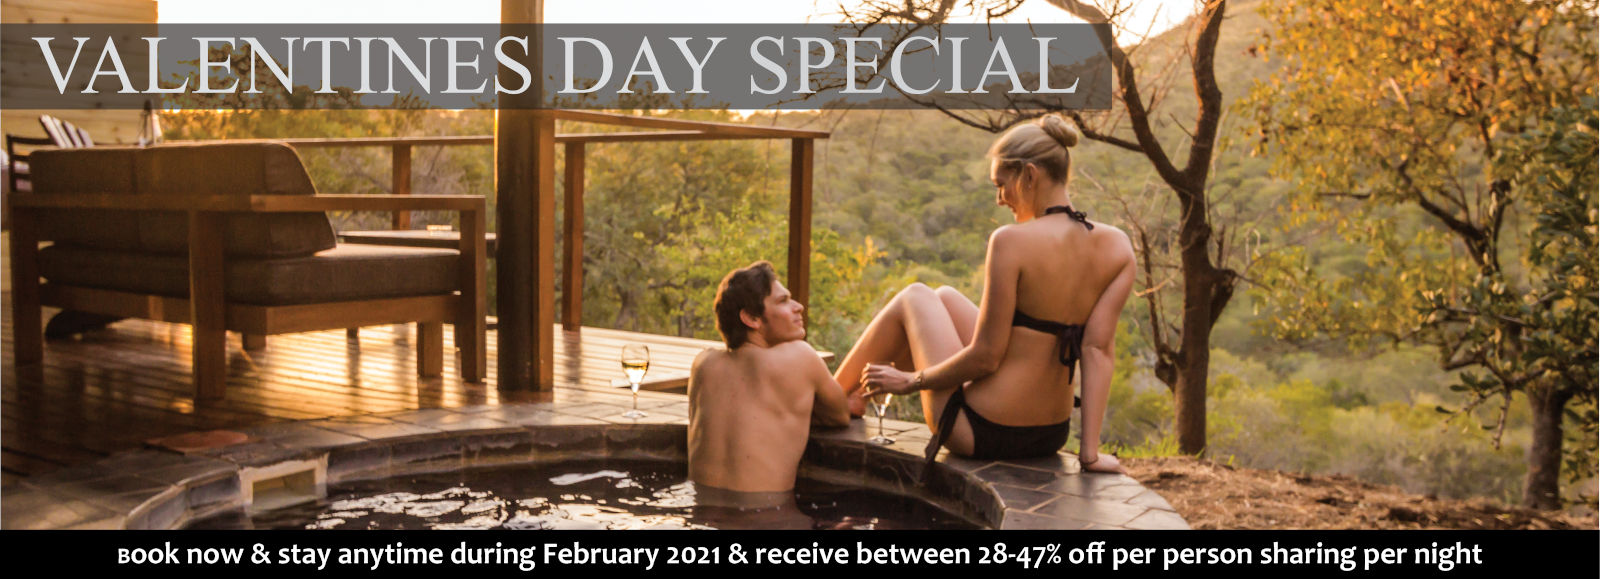 LM-Valentines-Day-Special-2021